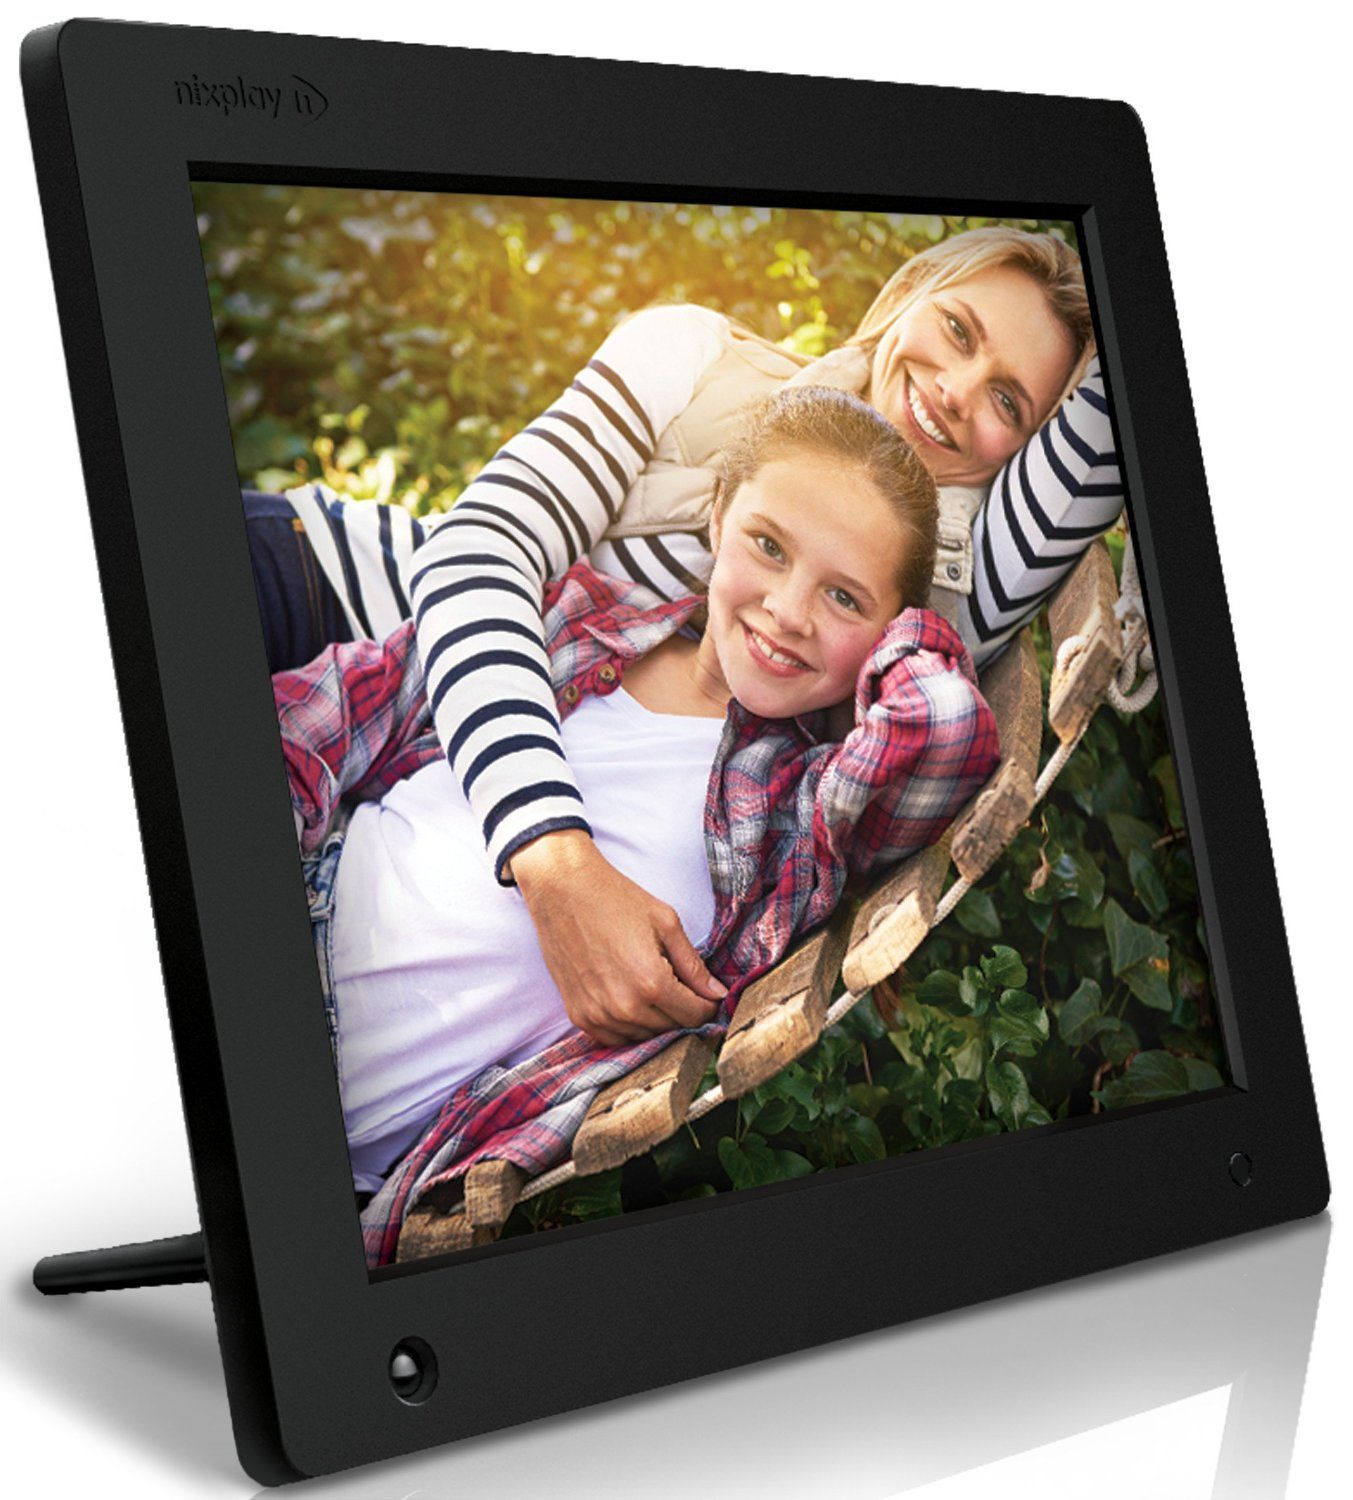 Amazing Digital Picture Frames Reviews Image Collection - Picture ...